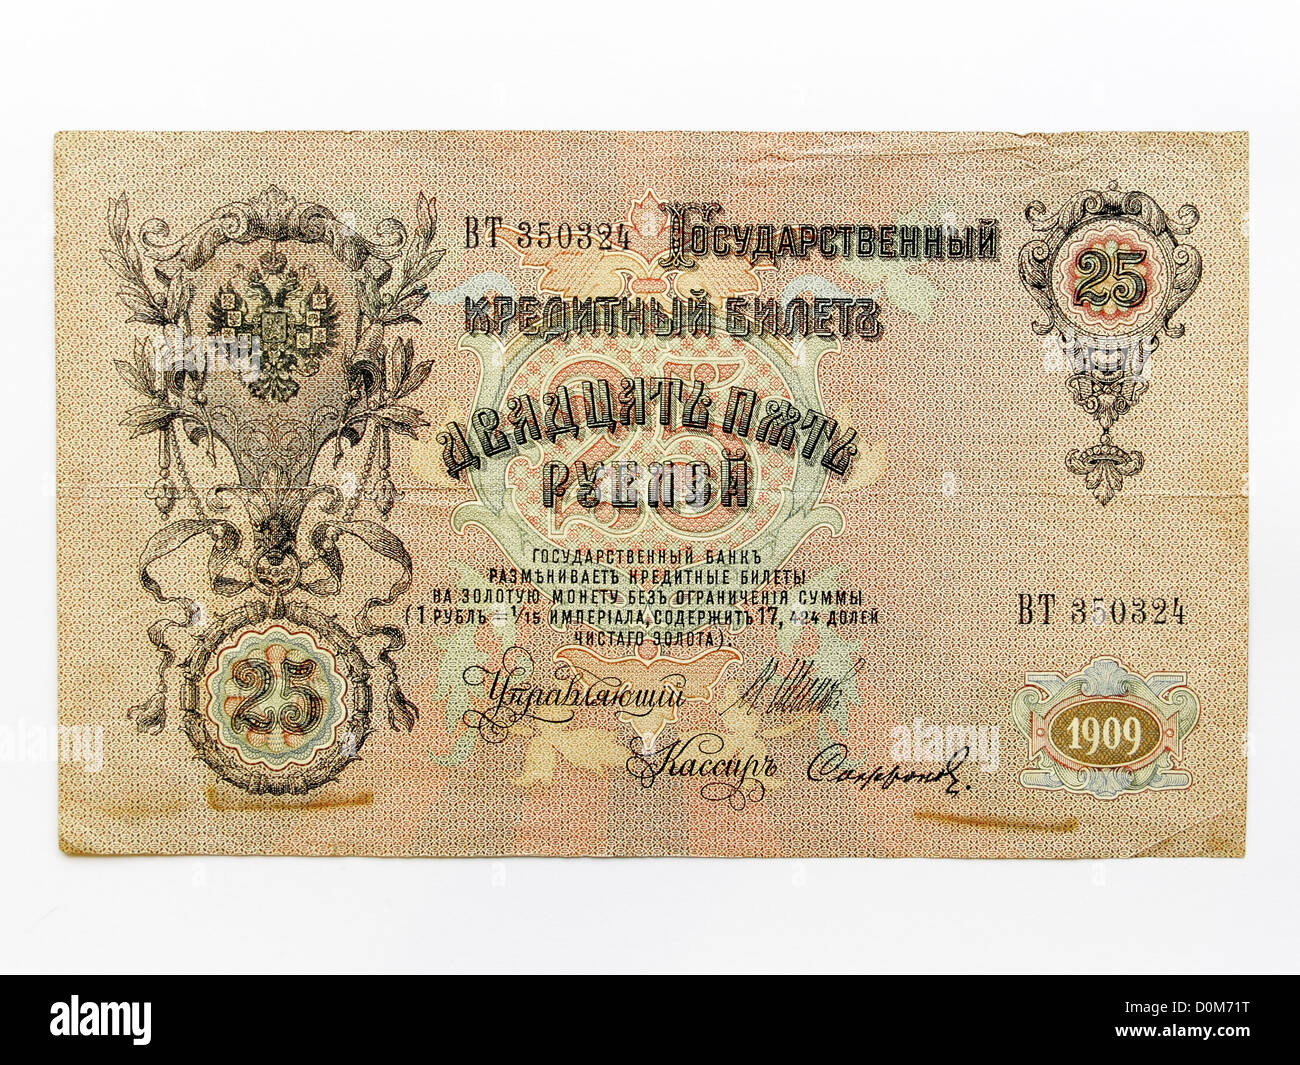 25 twentyfive twenty five twenty-five  Rouble Ruble Imperialist Russian banknote 1909 issue - Stock Image